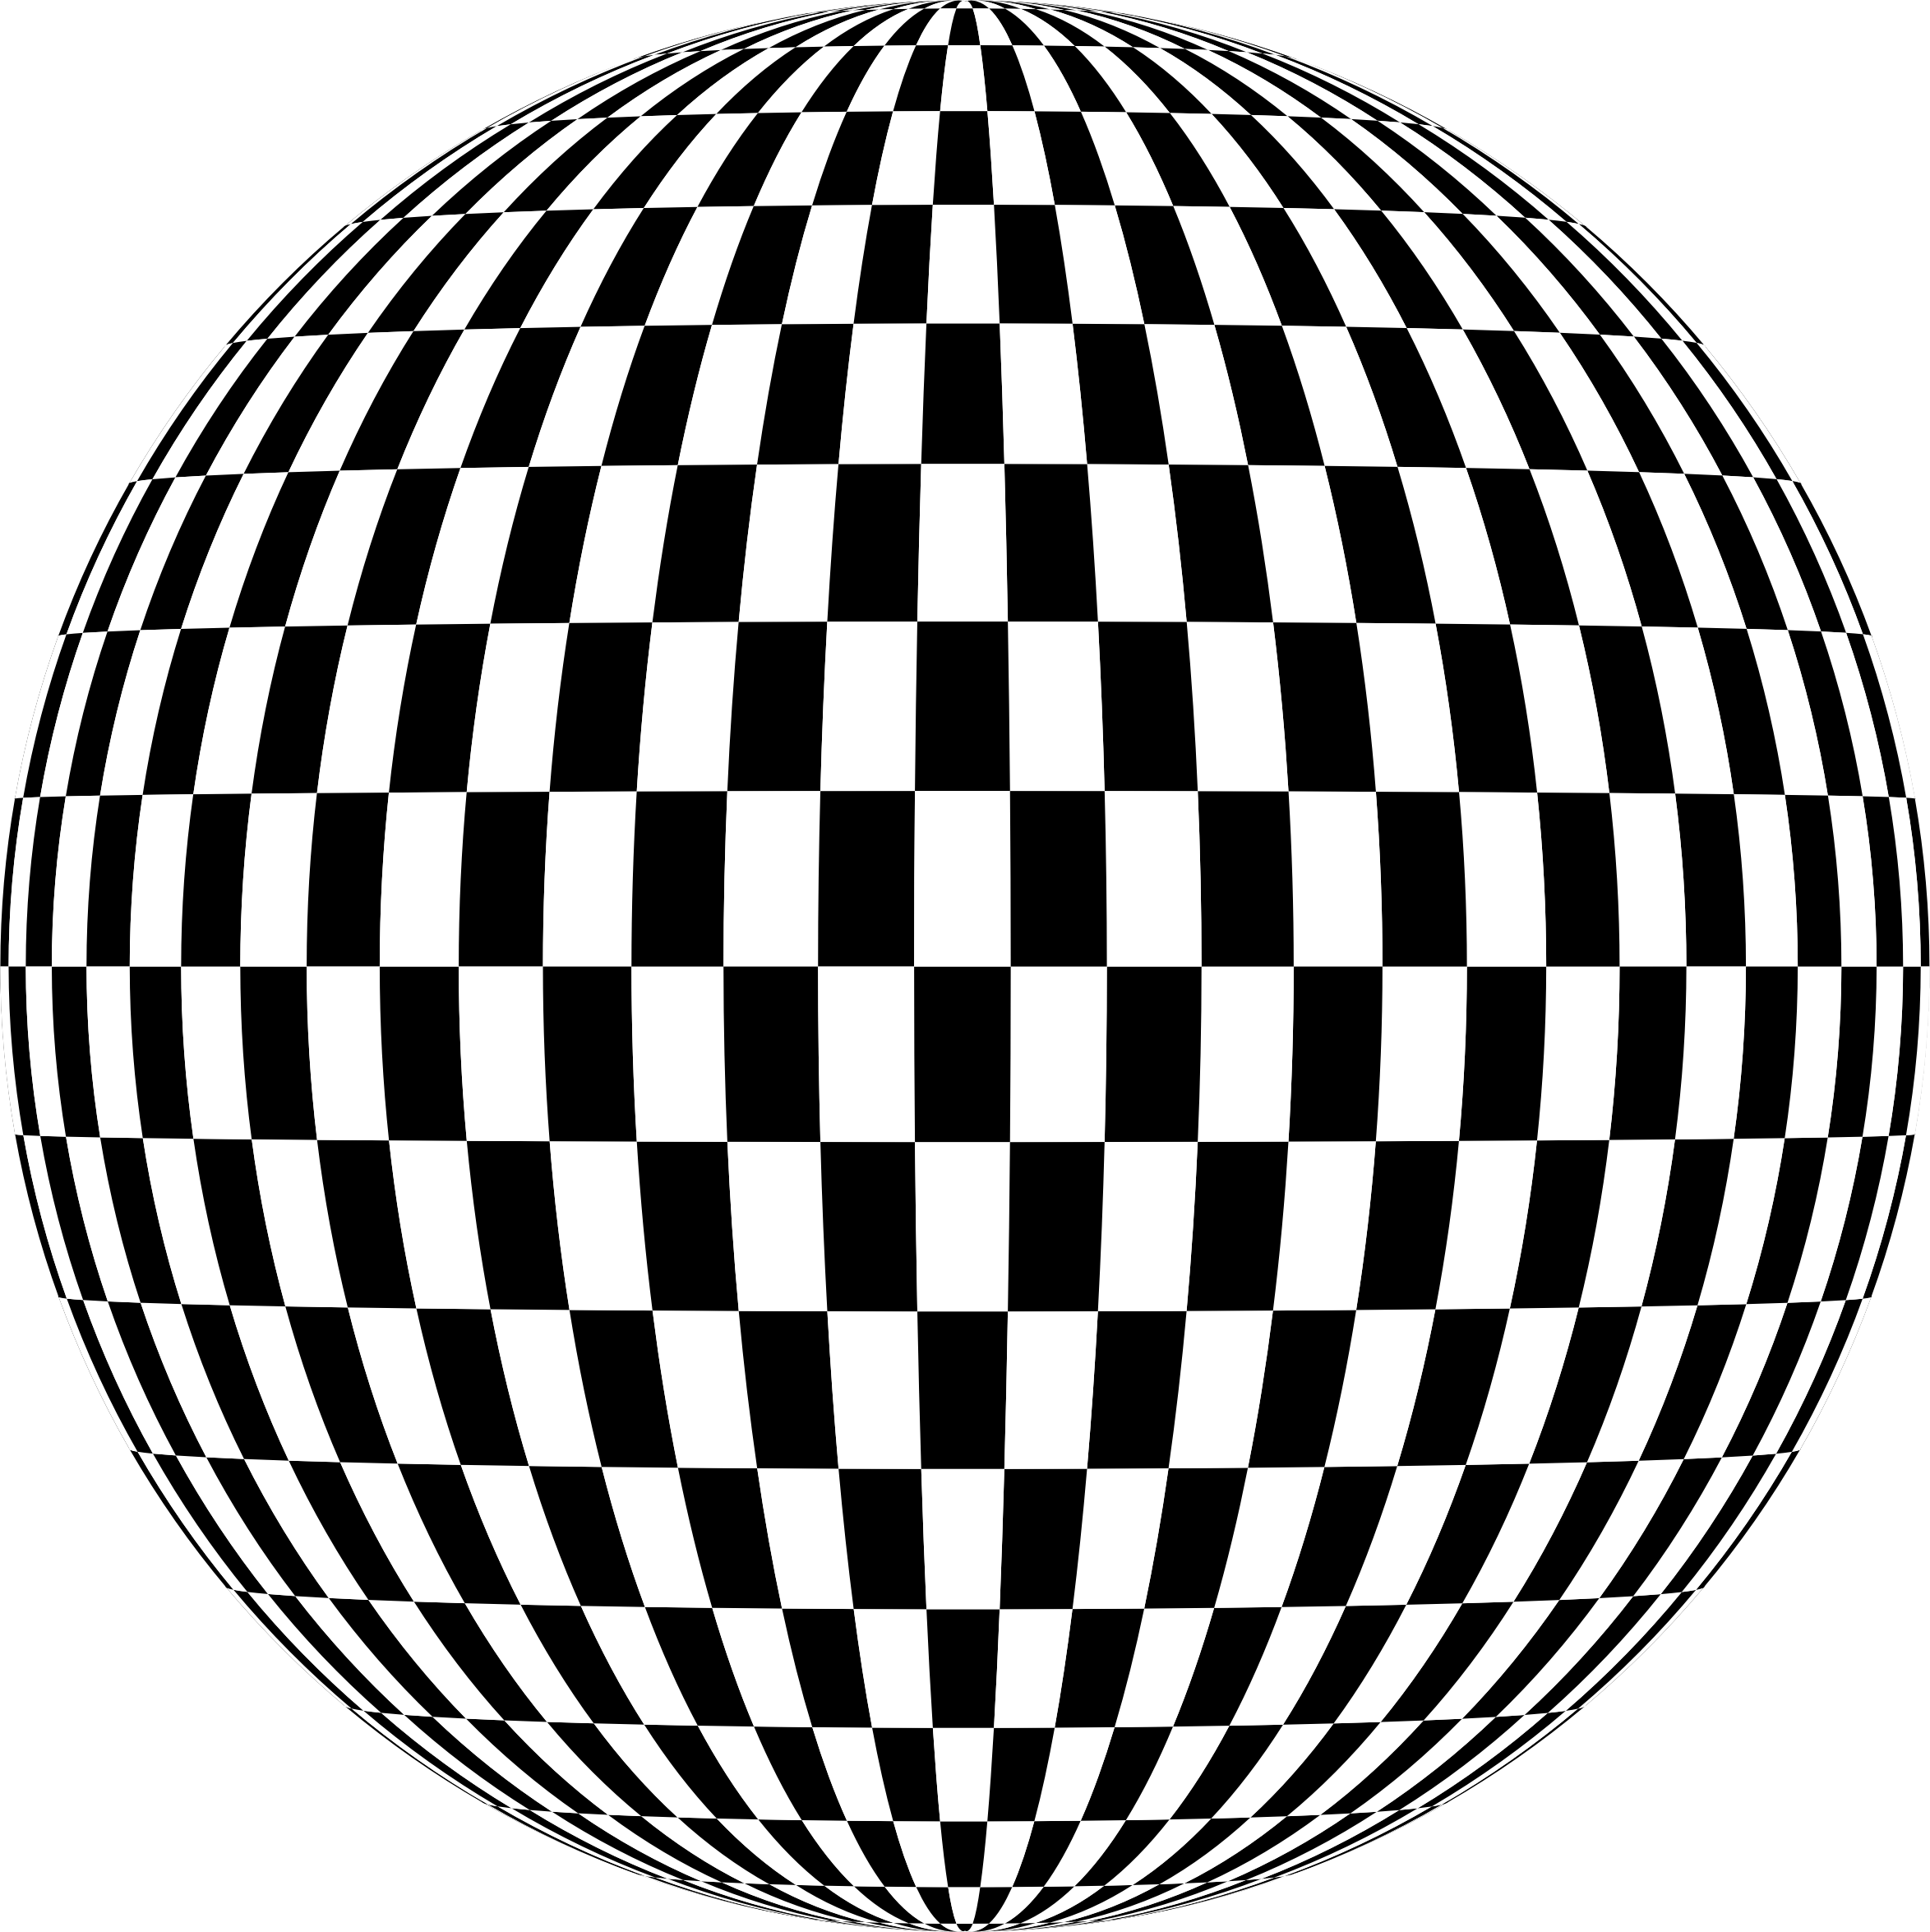 Trippy vector checkered. Sphere icons png free